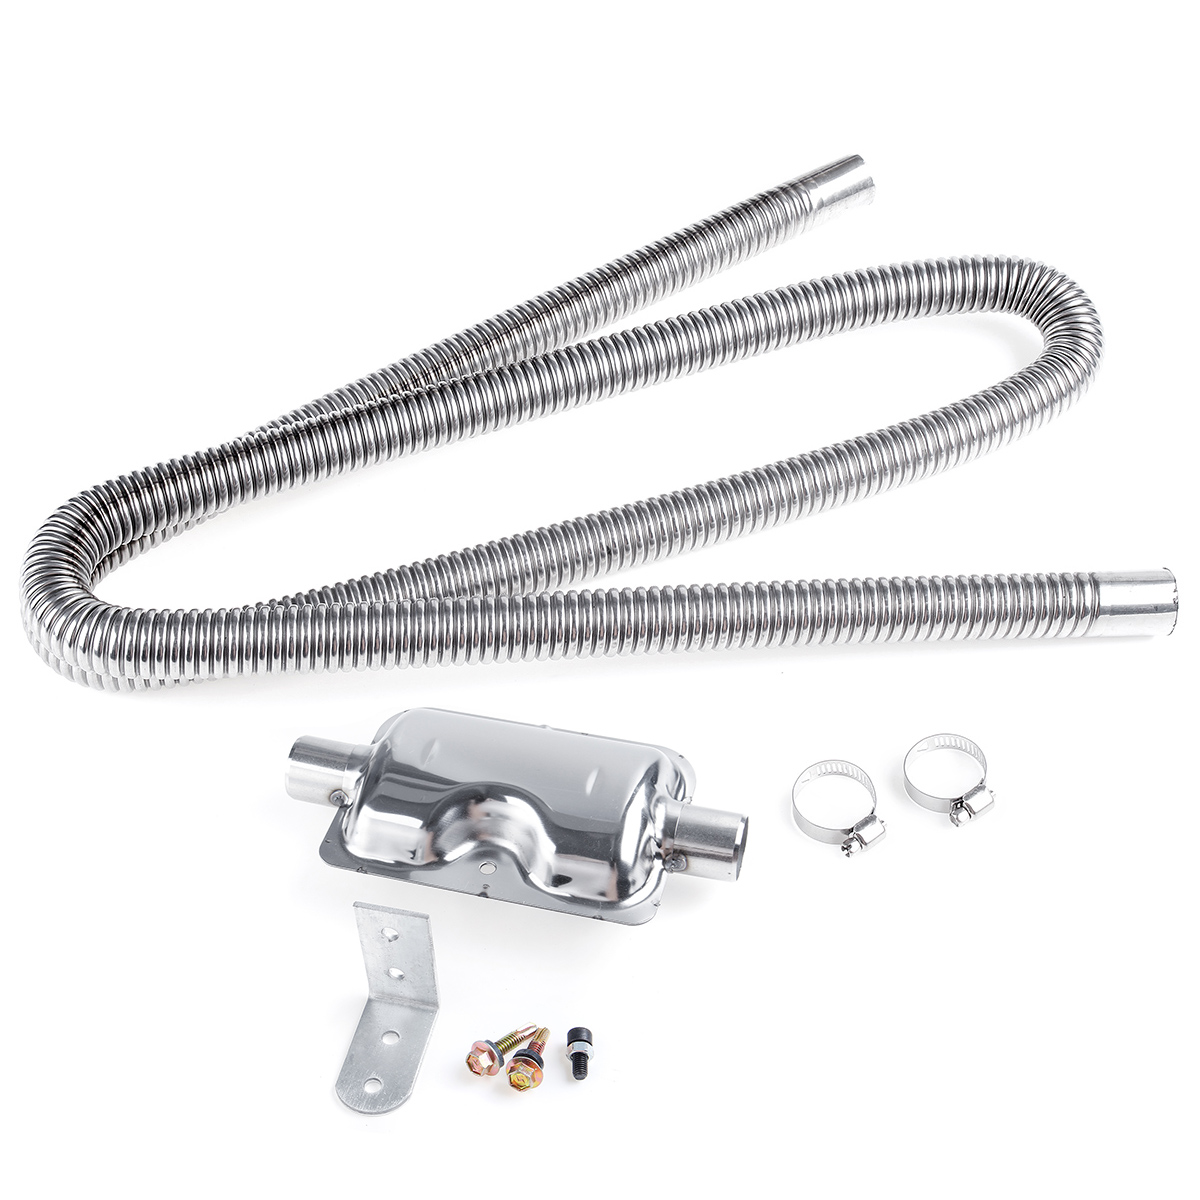 180Cm Stainless Exhaust Muffler Silencer Clamps Bracket Gas Vent Hose for Air Diesels Car Heater Kit